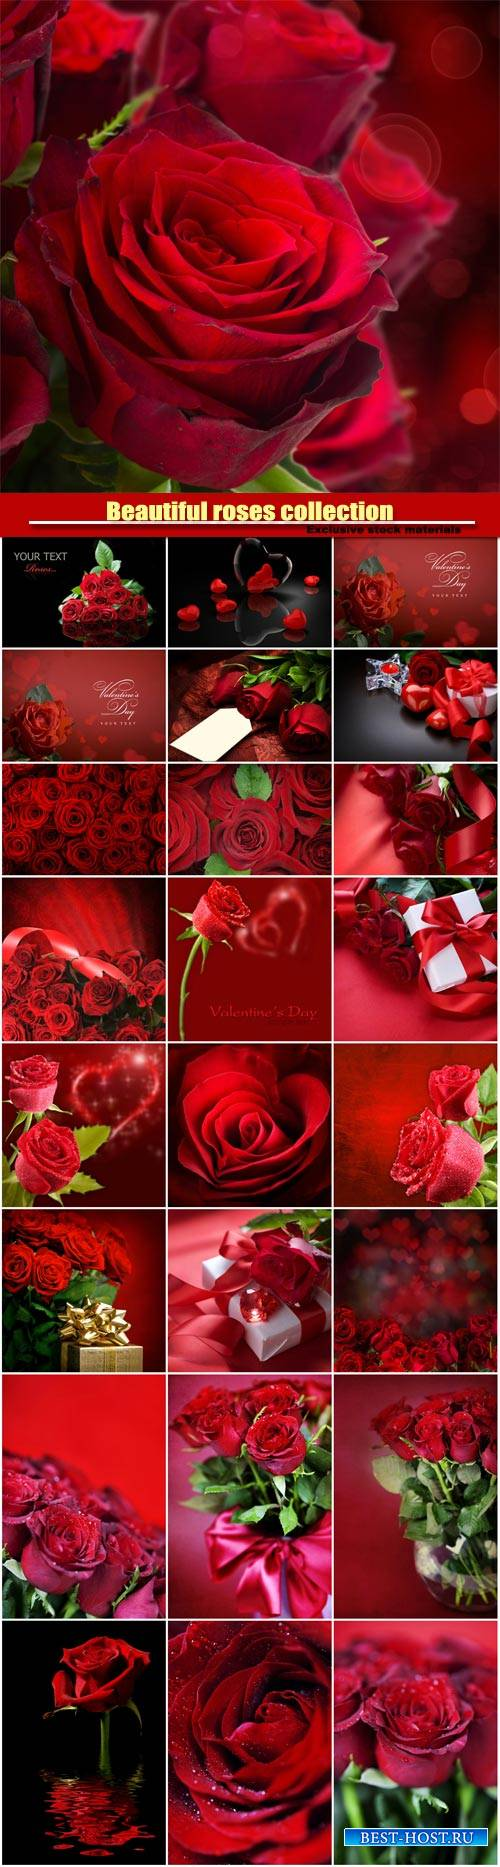 Beautiful roses, romantic collection backgrounds